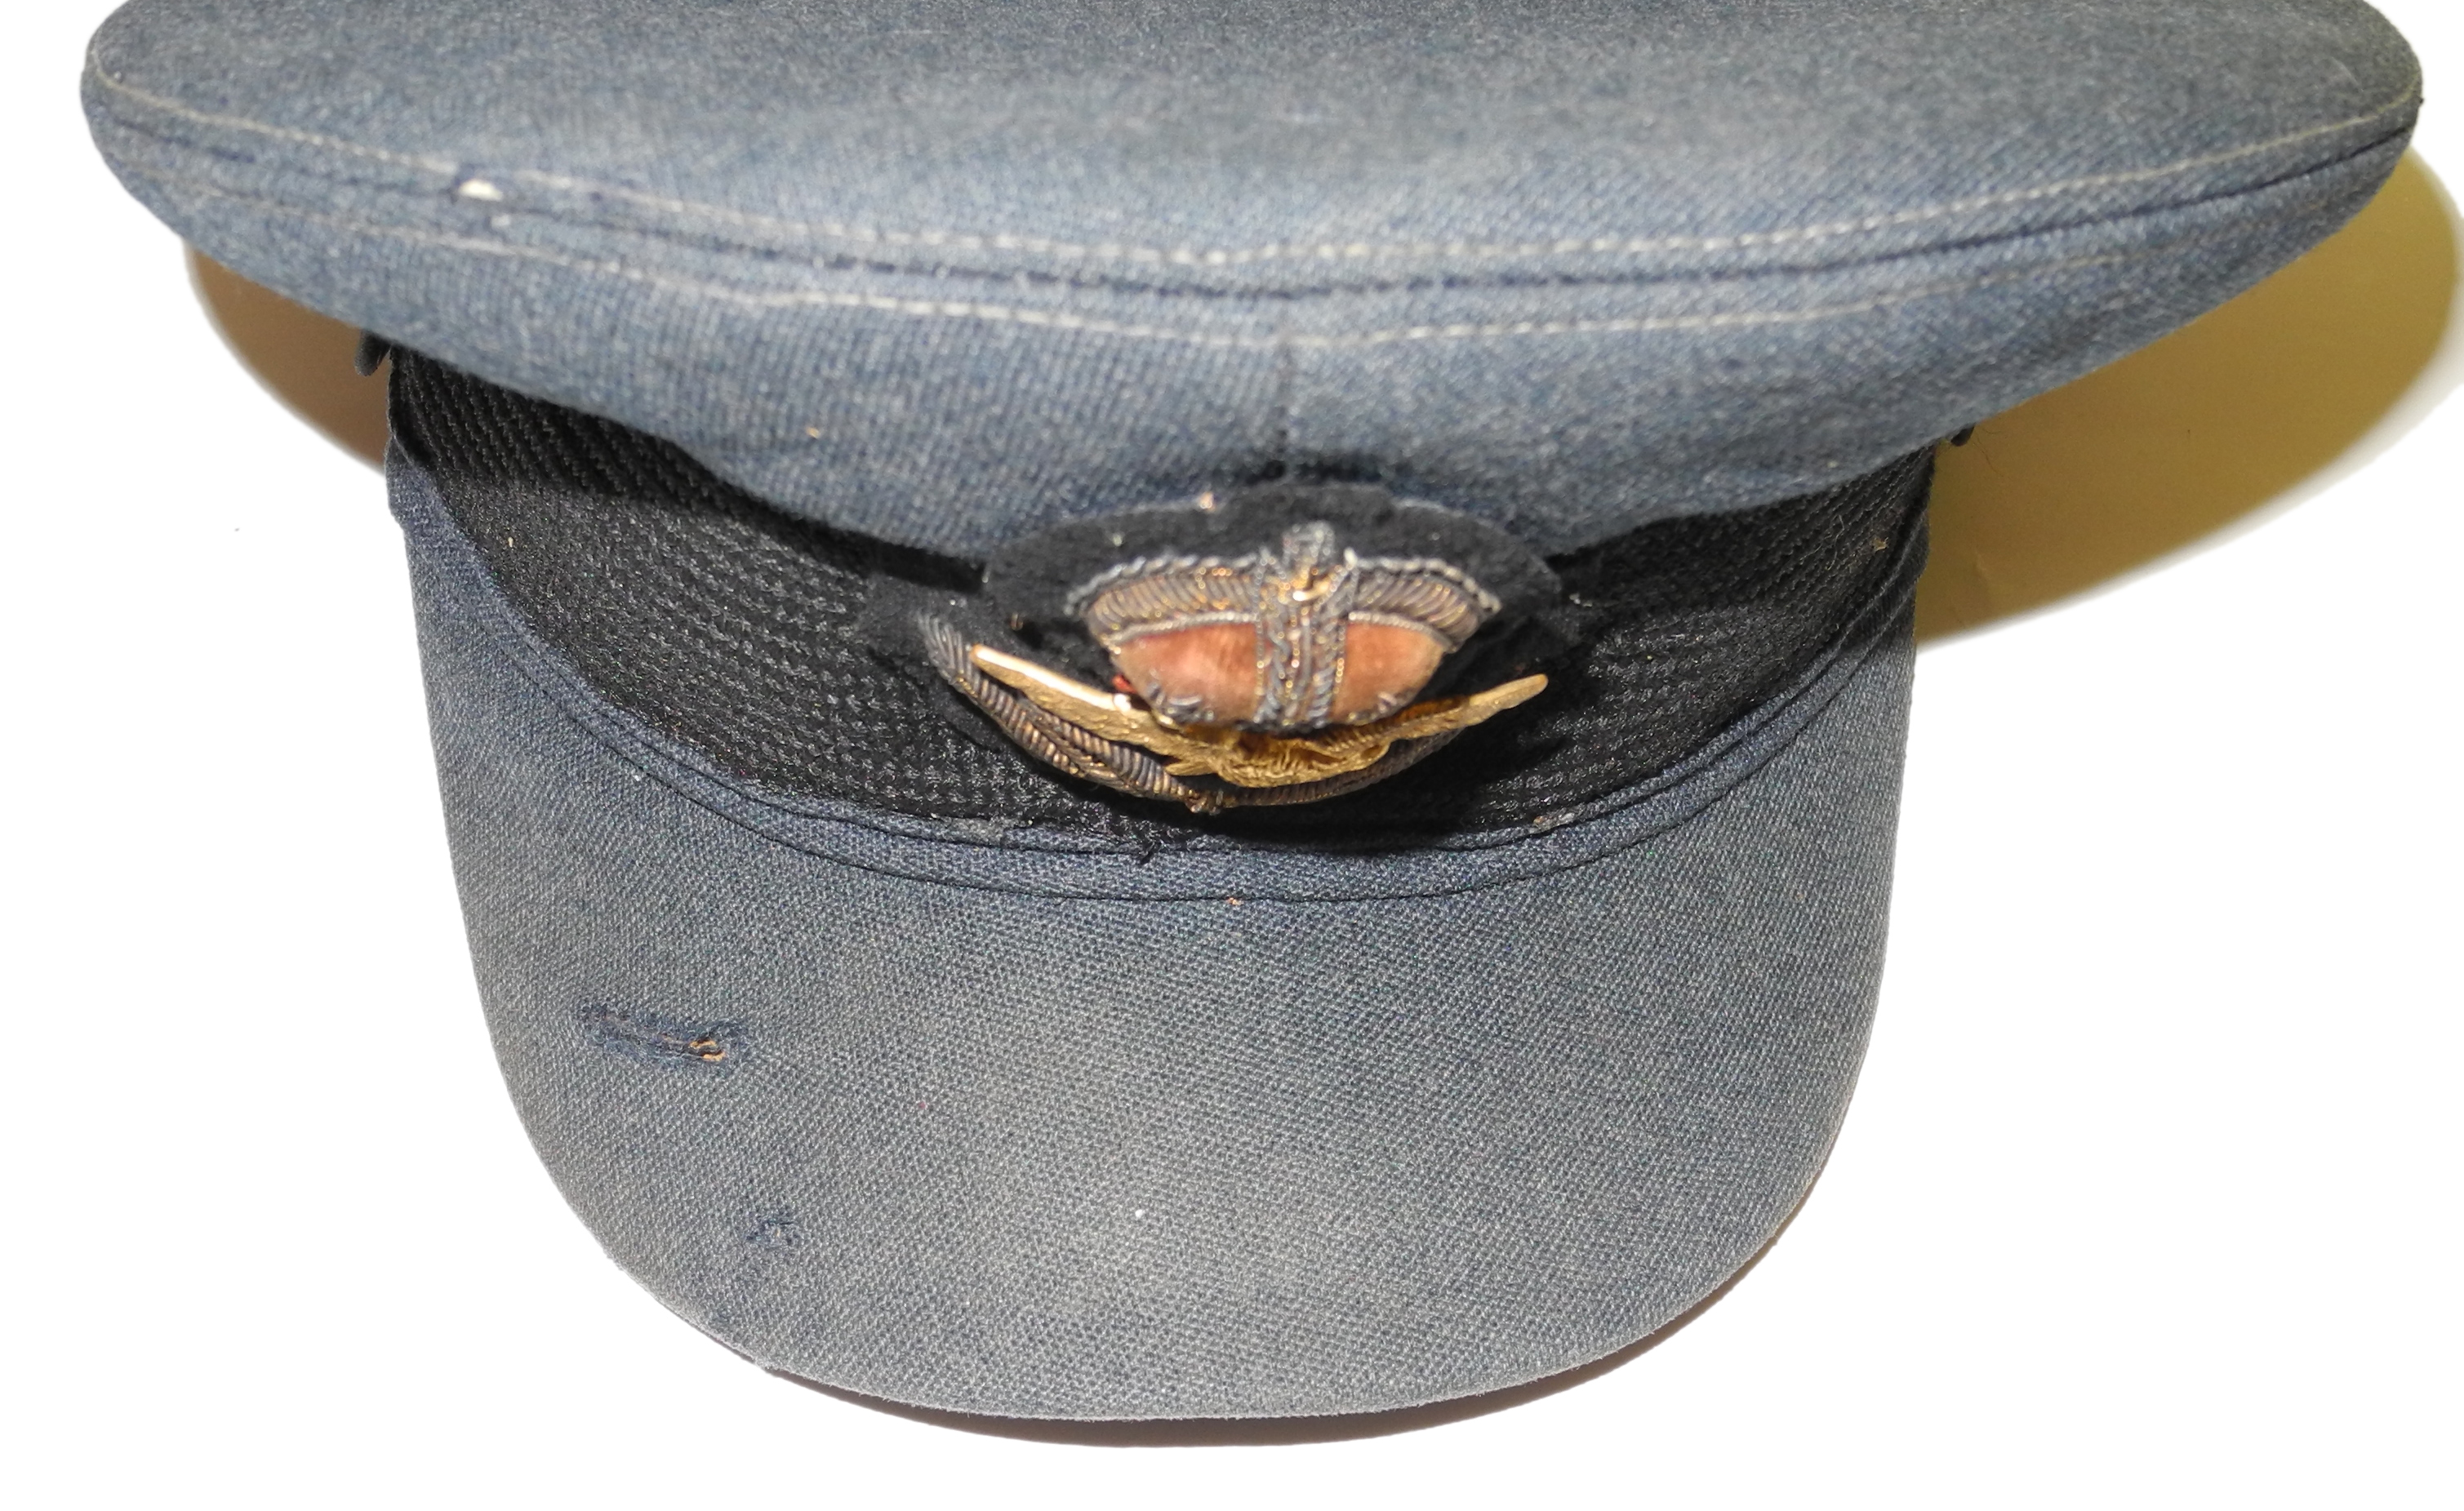 Pre-WWII RAF officer's cap